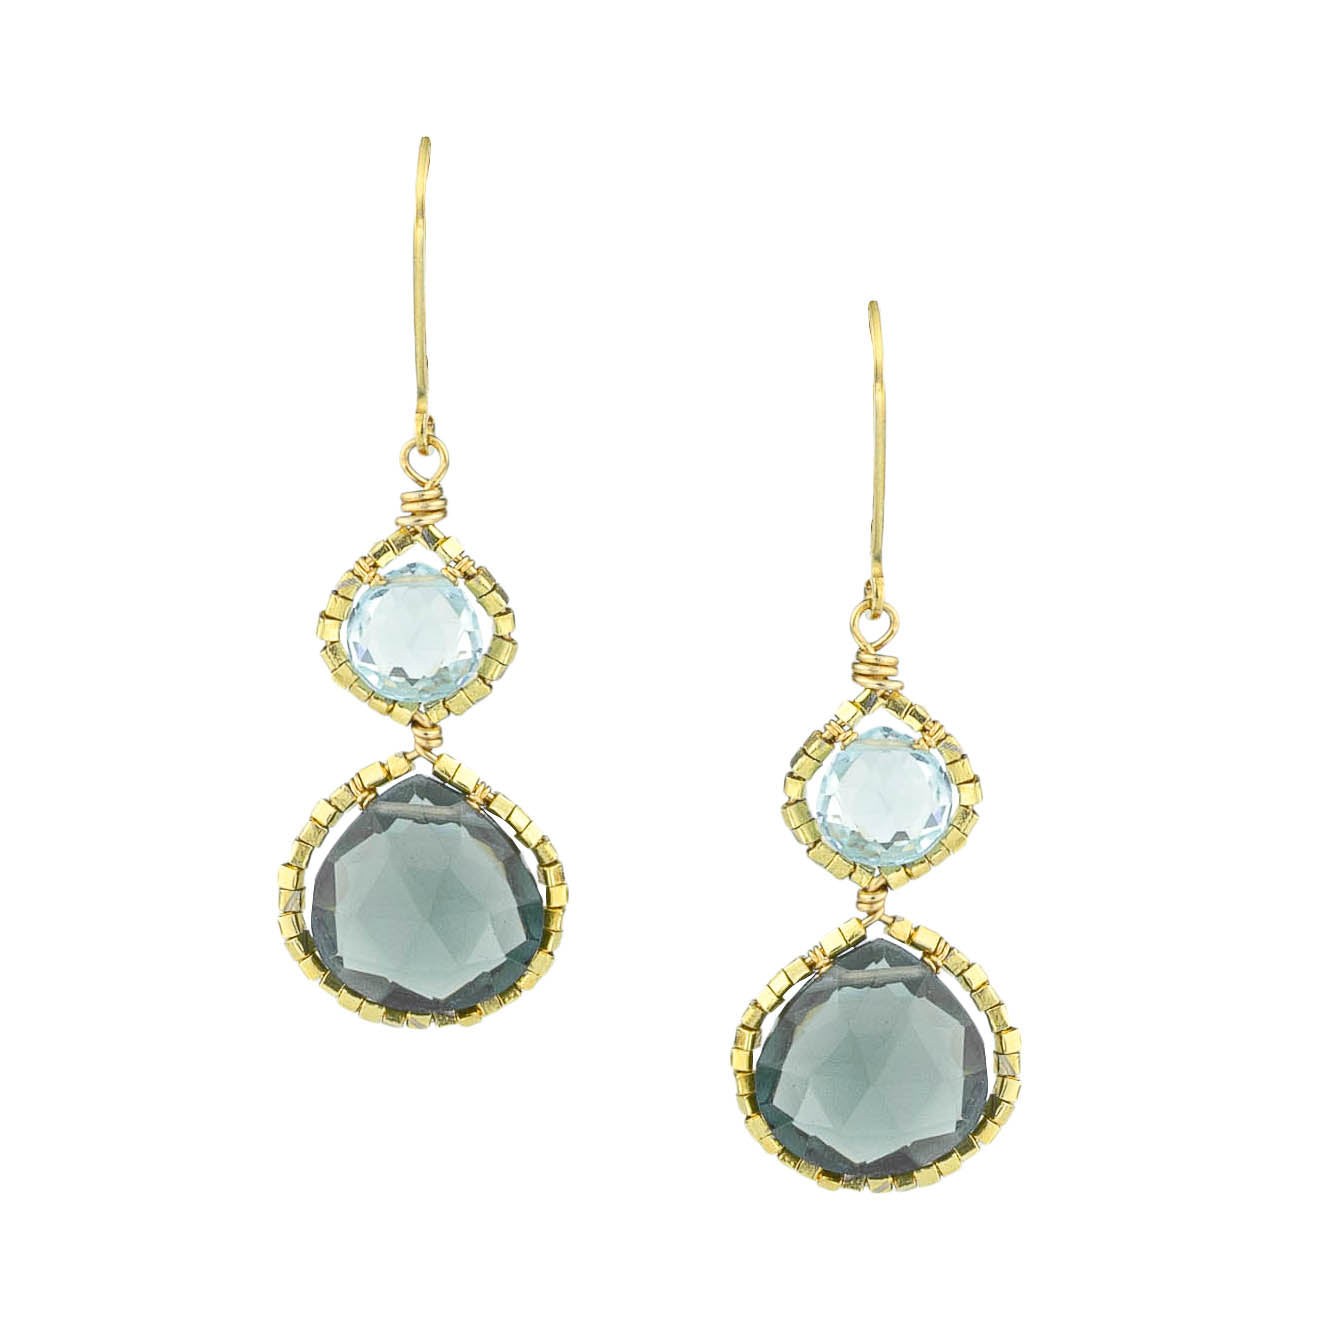 Blue Topaz and Quartz Earrings